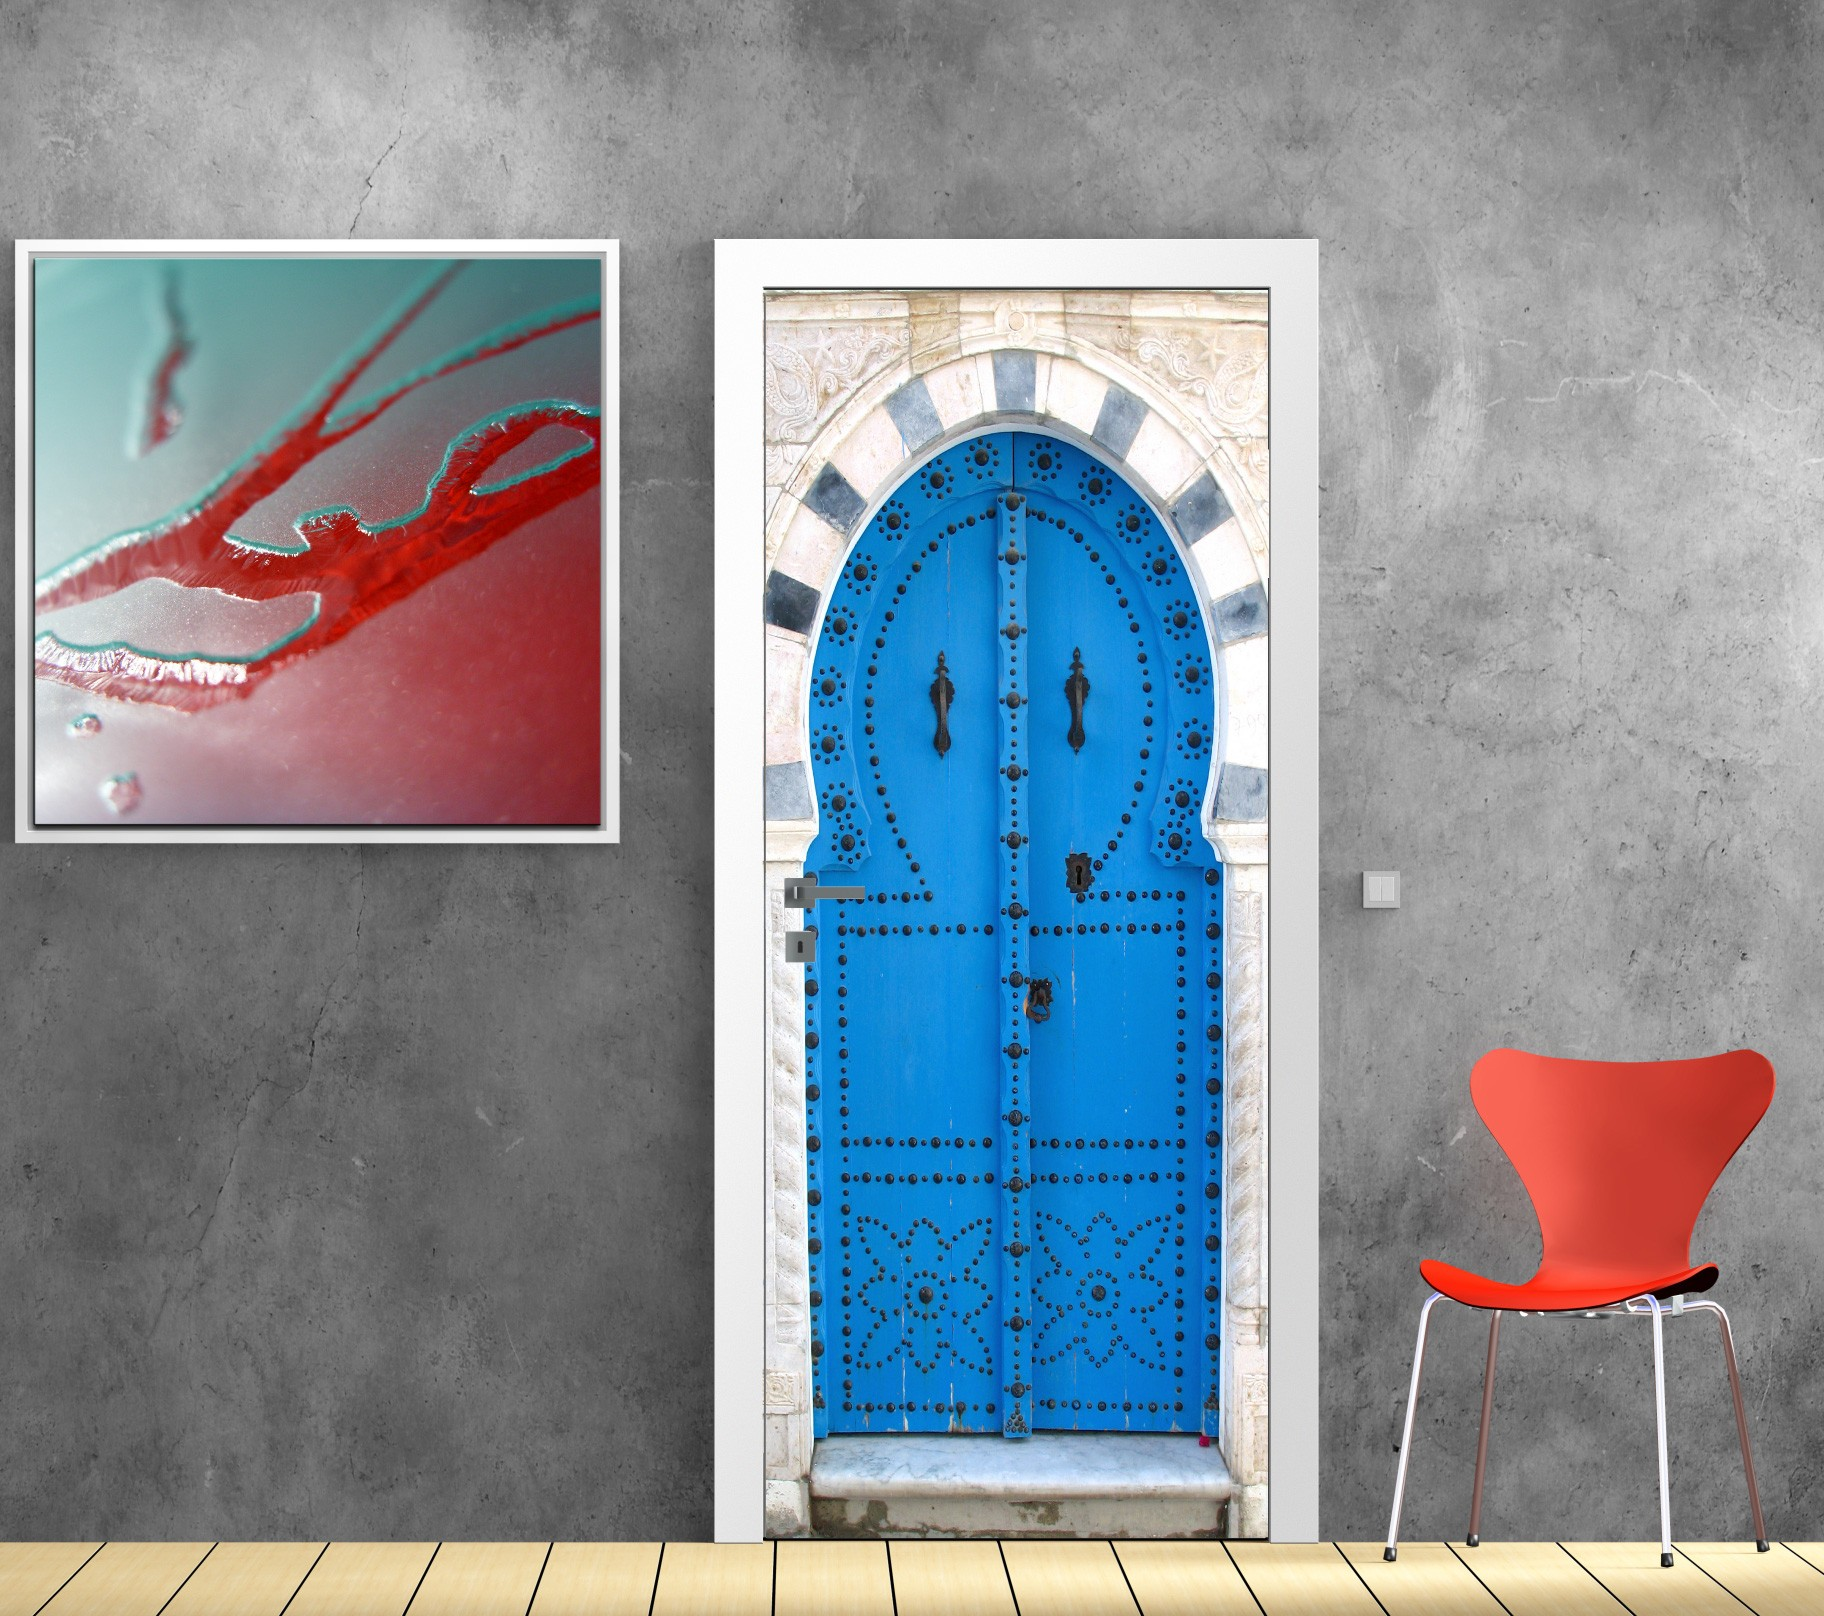 Deco porte interieure en trompe l oeil beautiful for Sticker deco porte interieure